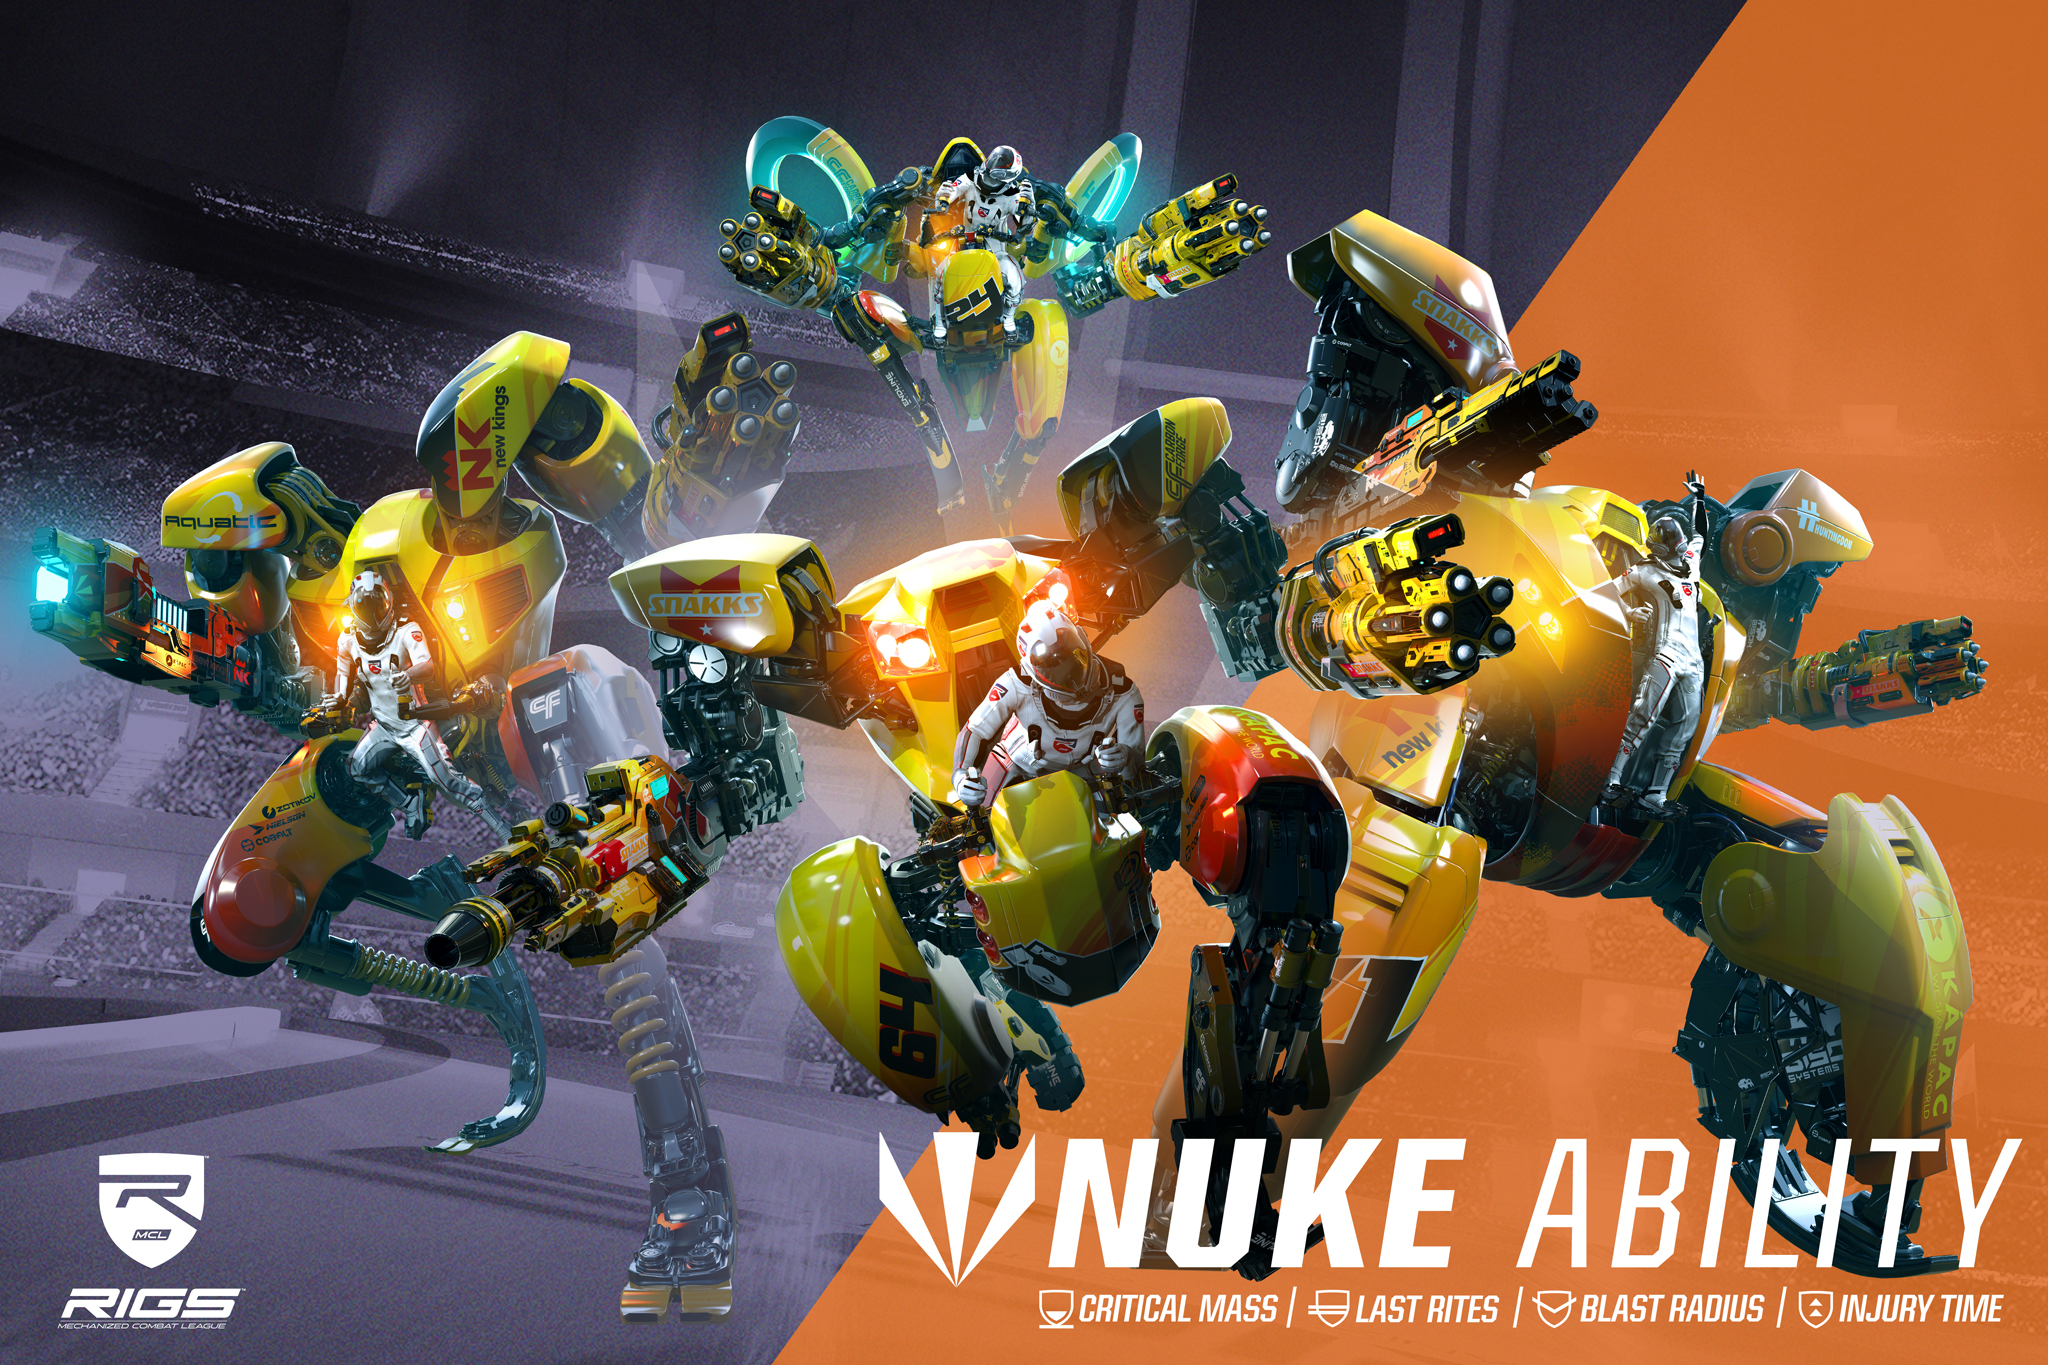 Ability_Group_Nuke_No_Weapon_Details_updated.jpg